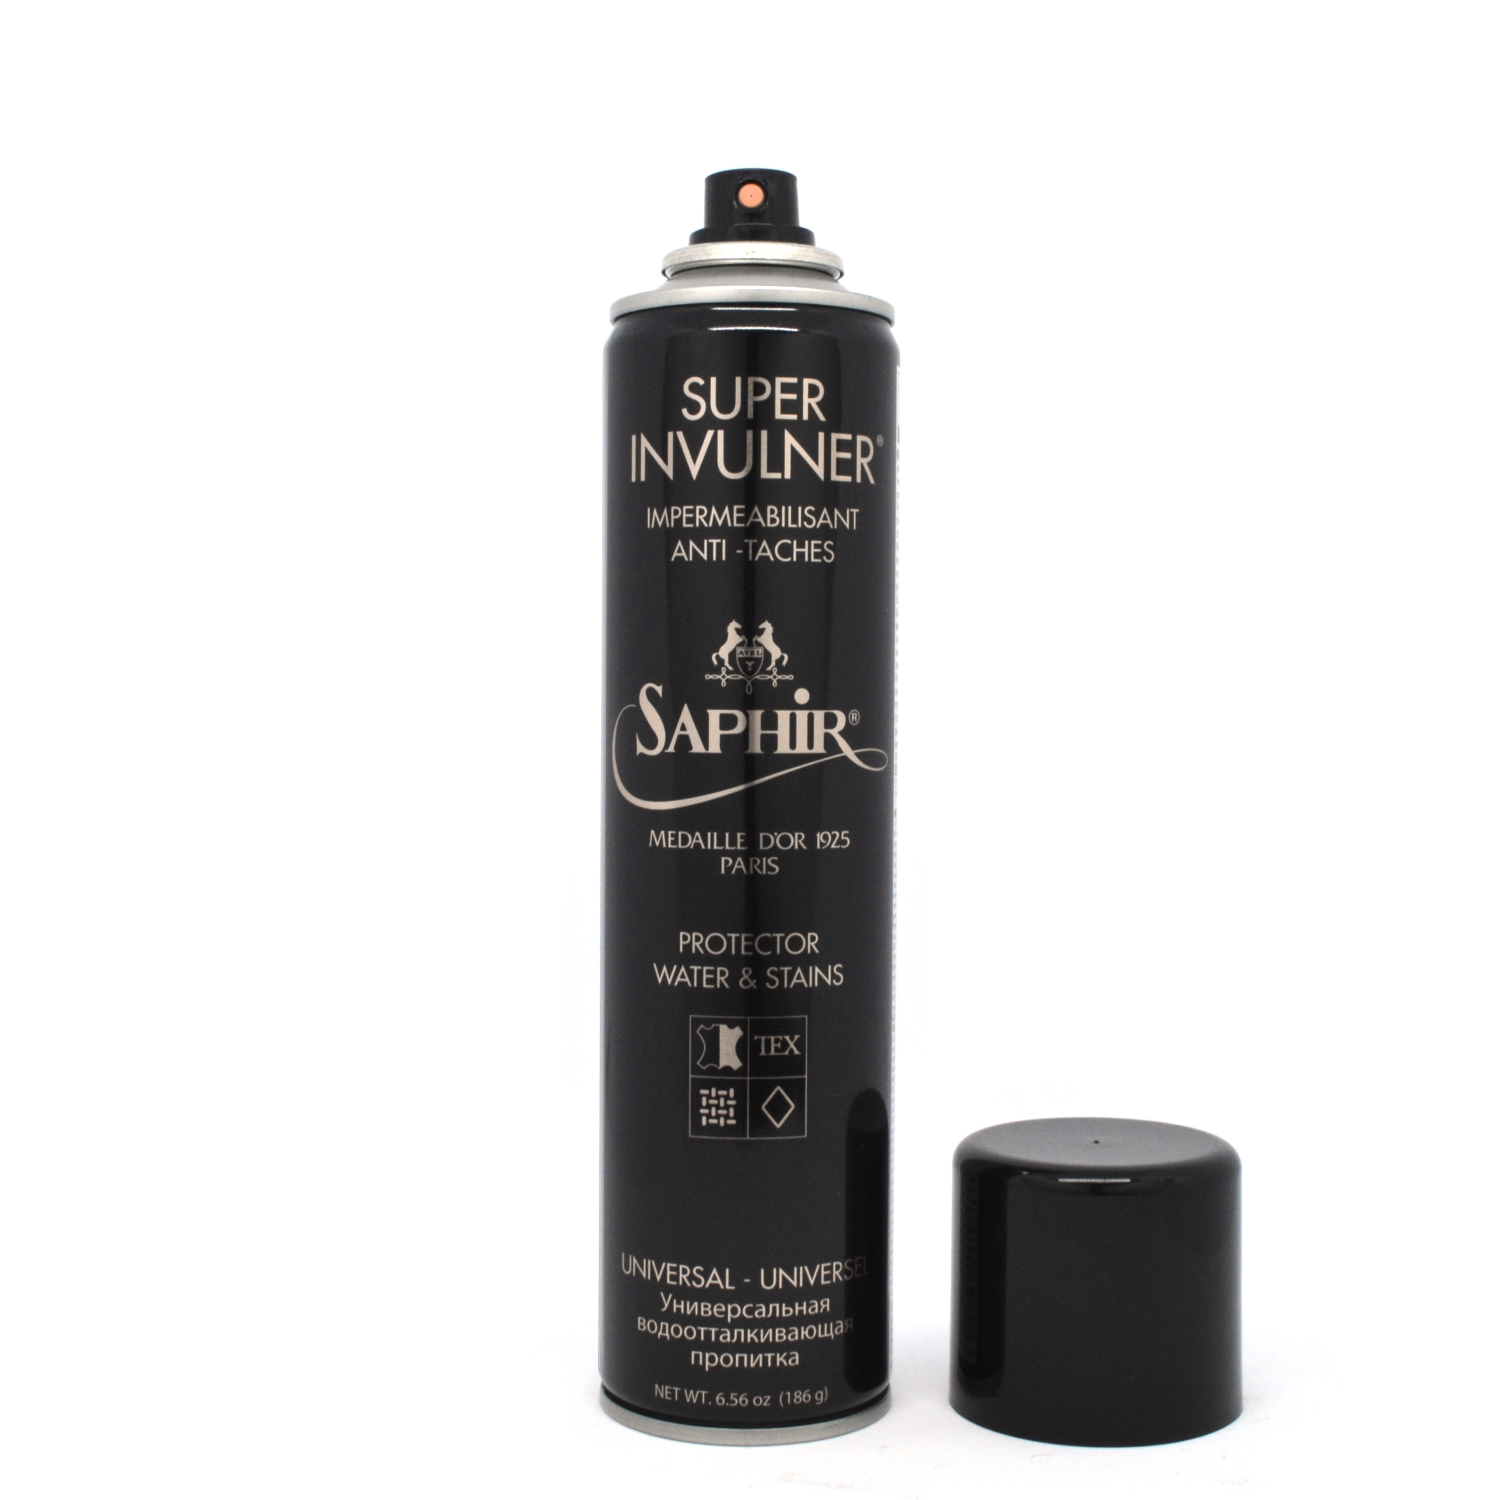 Saphir Super Invulner Waterproofing Spray